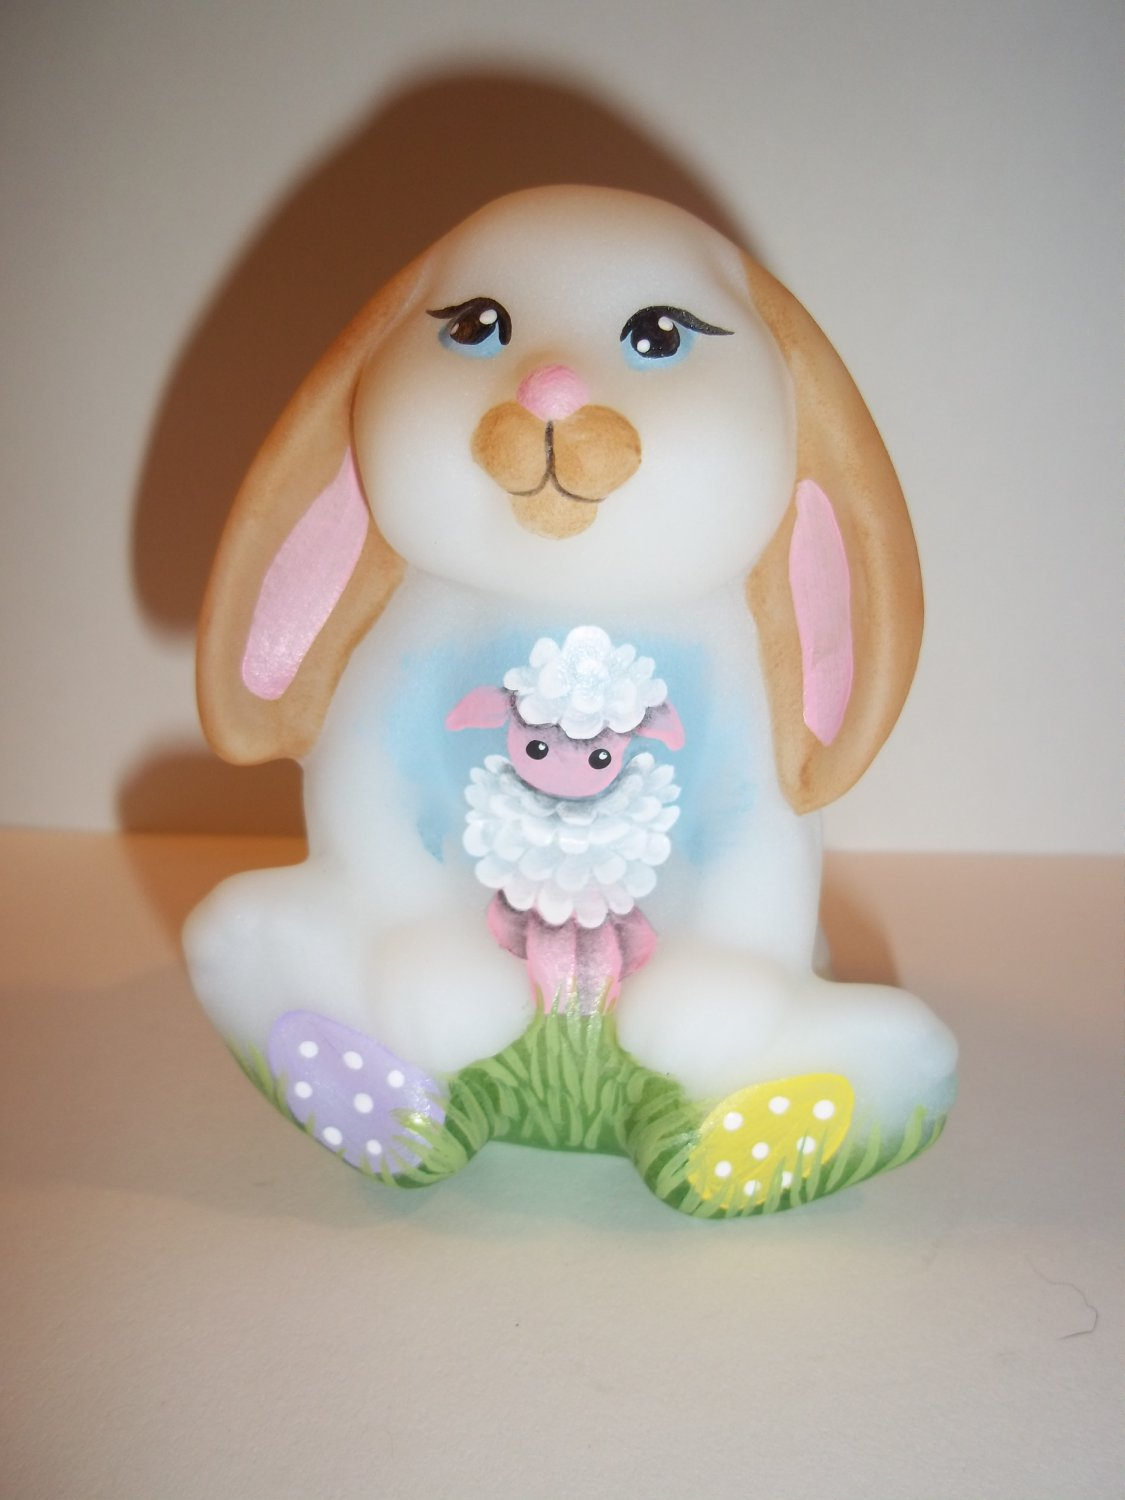 Fenton Glass Easter Bunny Rabbit w Lamb & Chick NFGS Exclusive by CC Hardman